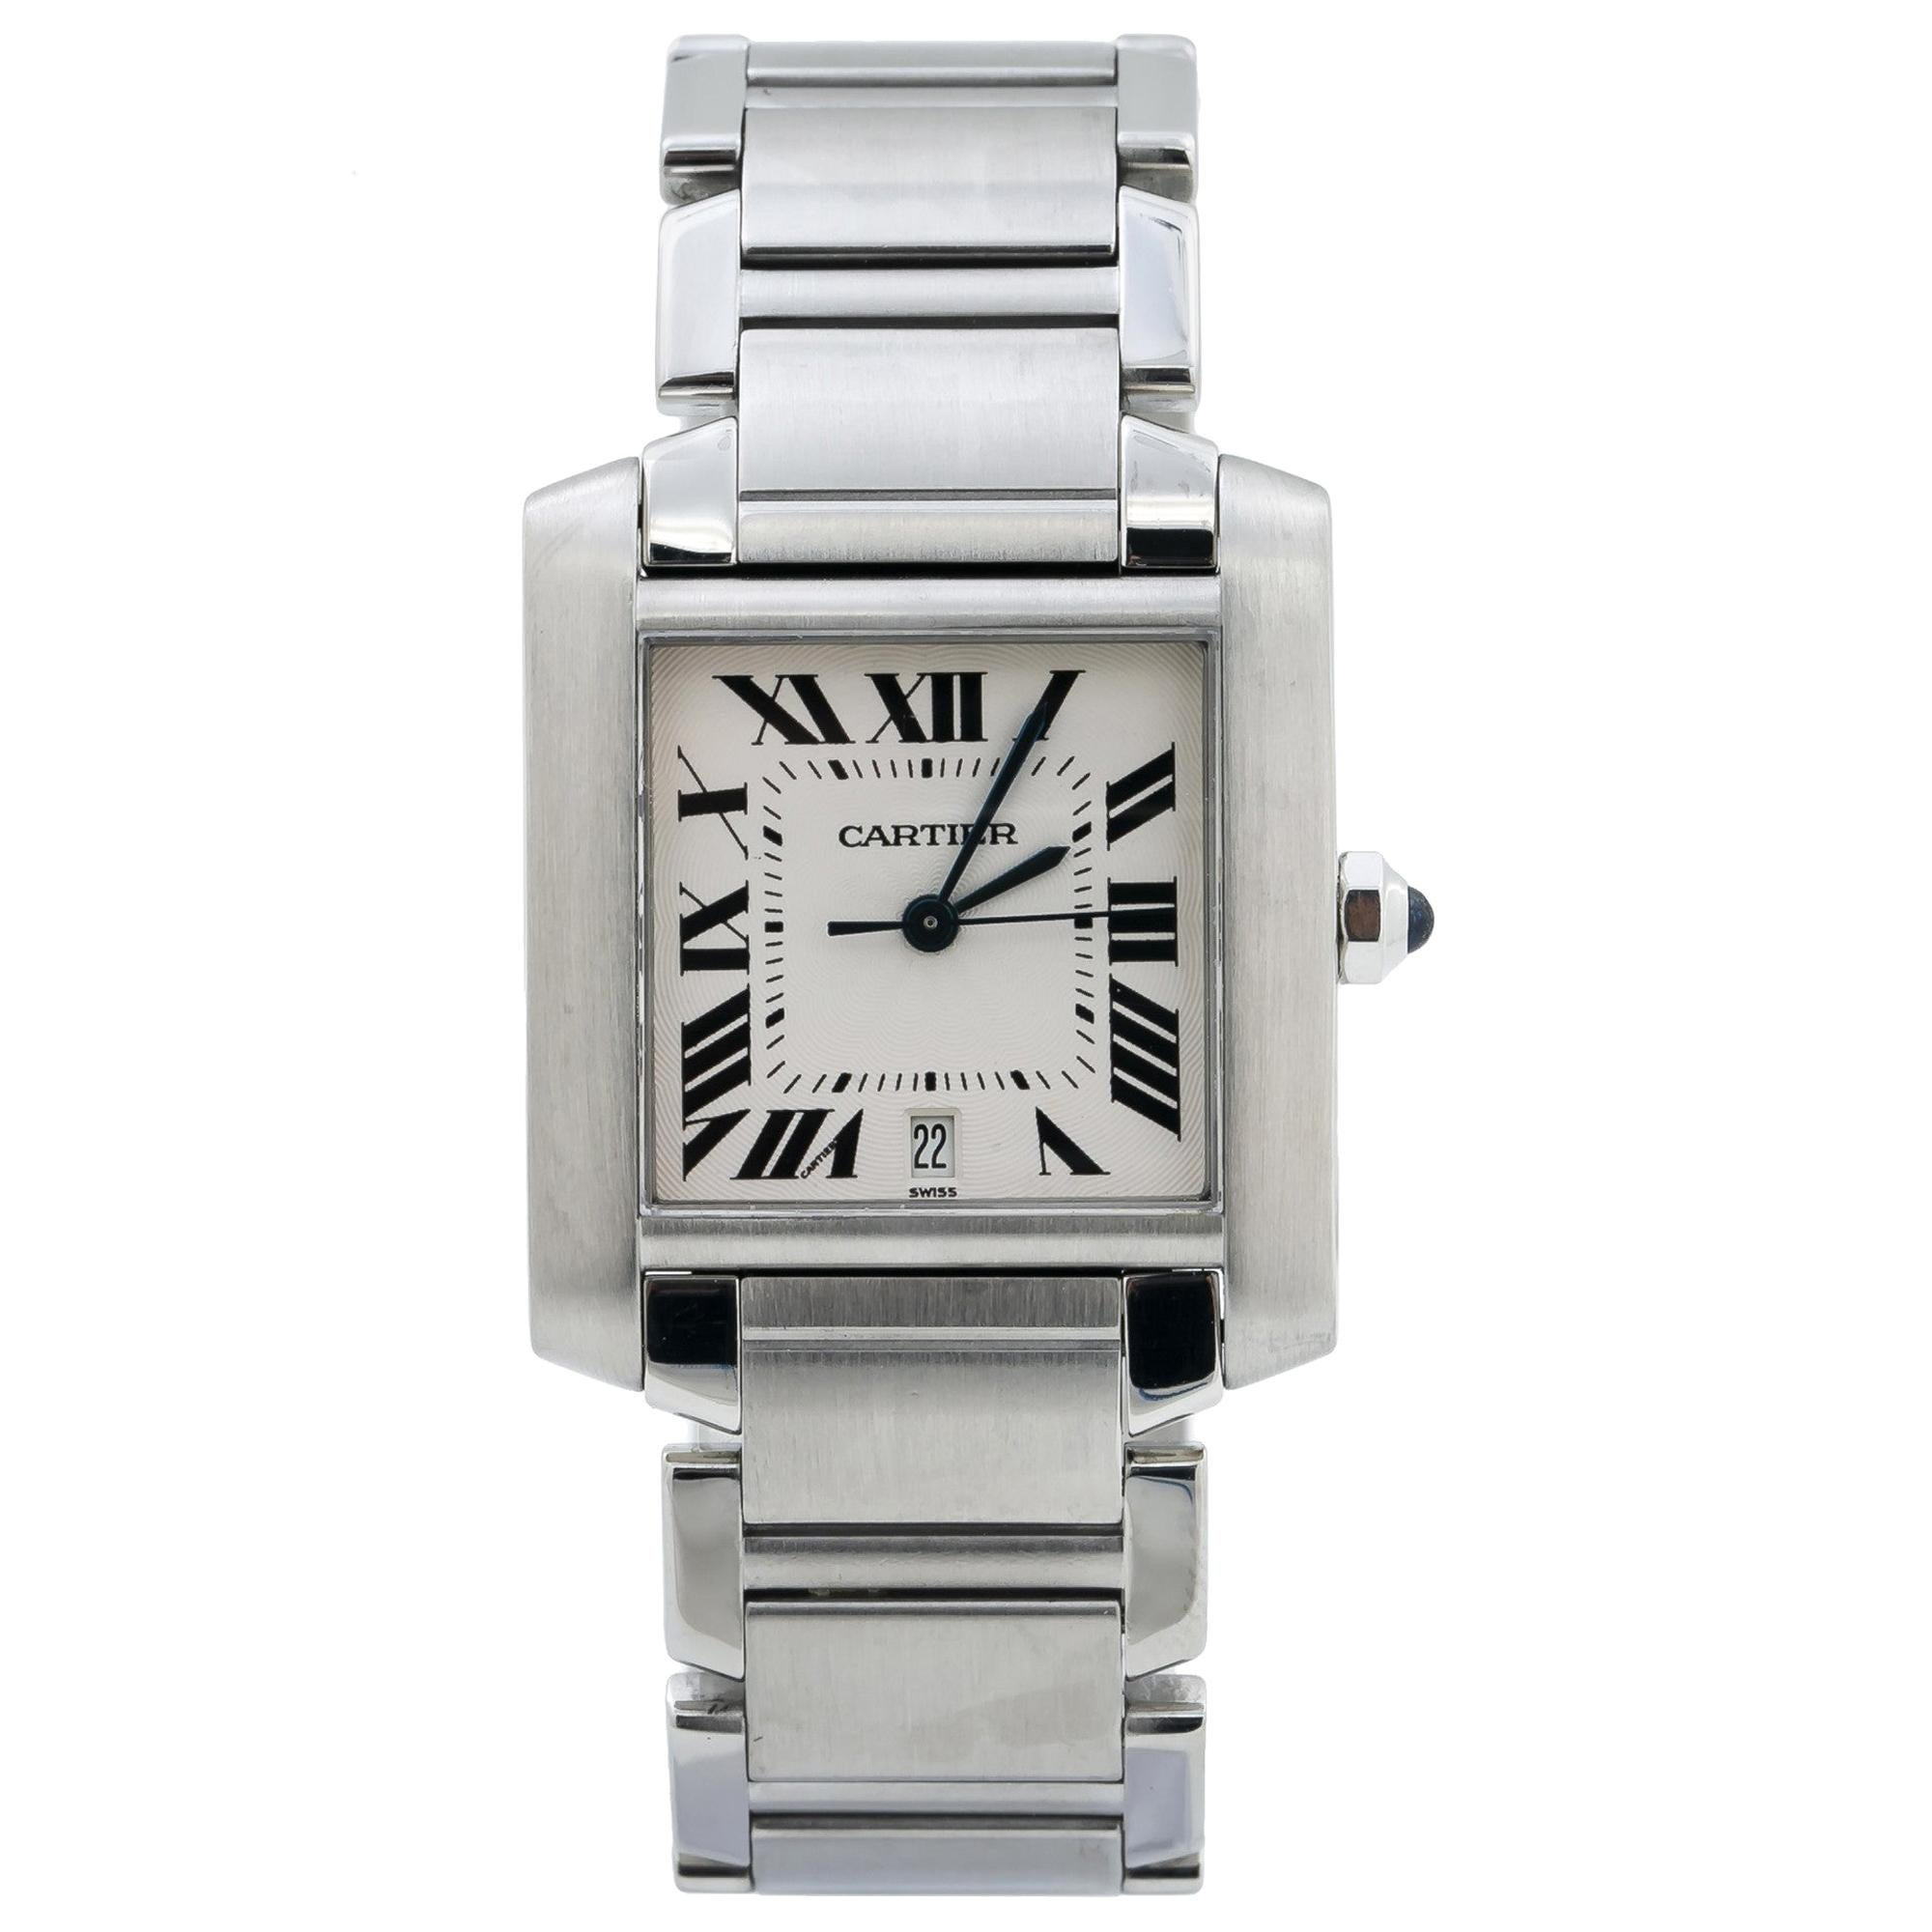 Cartier Tank Francaise 2302 Automatic Stainless-Steel Men's Watch